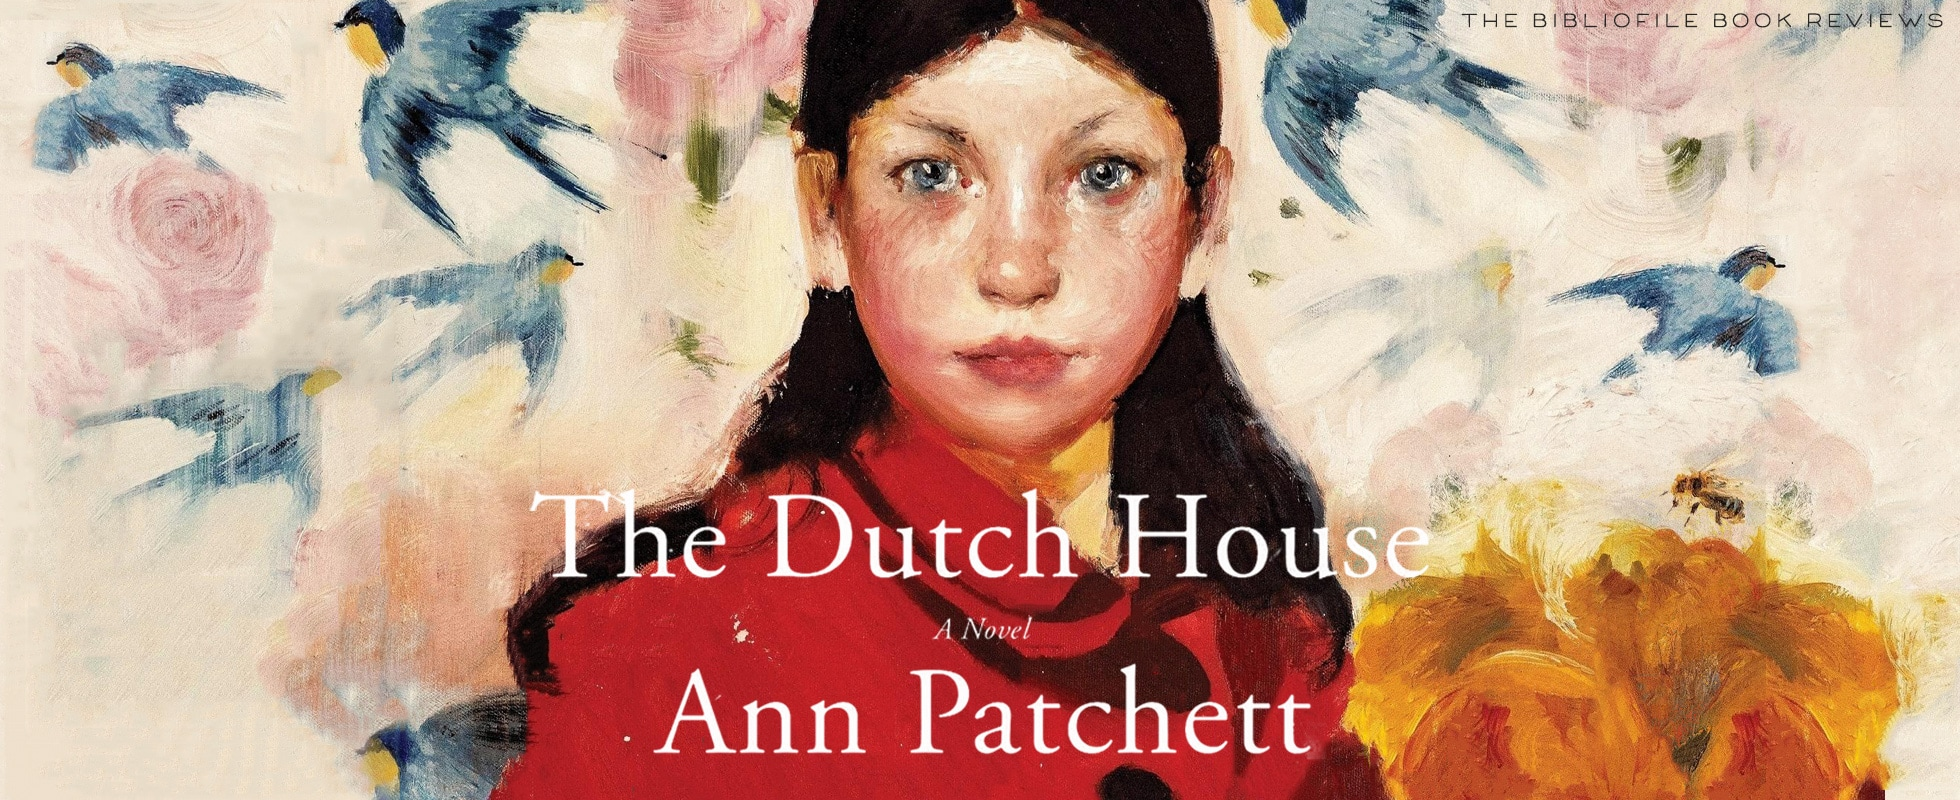 dutch house ann patchett summary book review synopsis